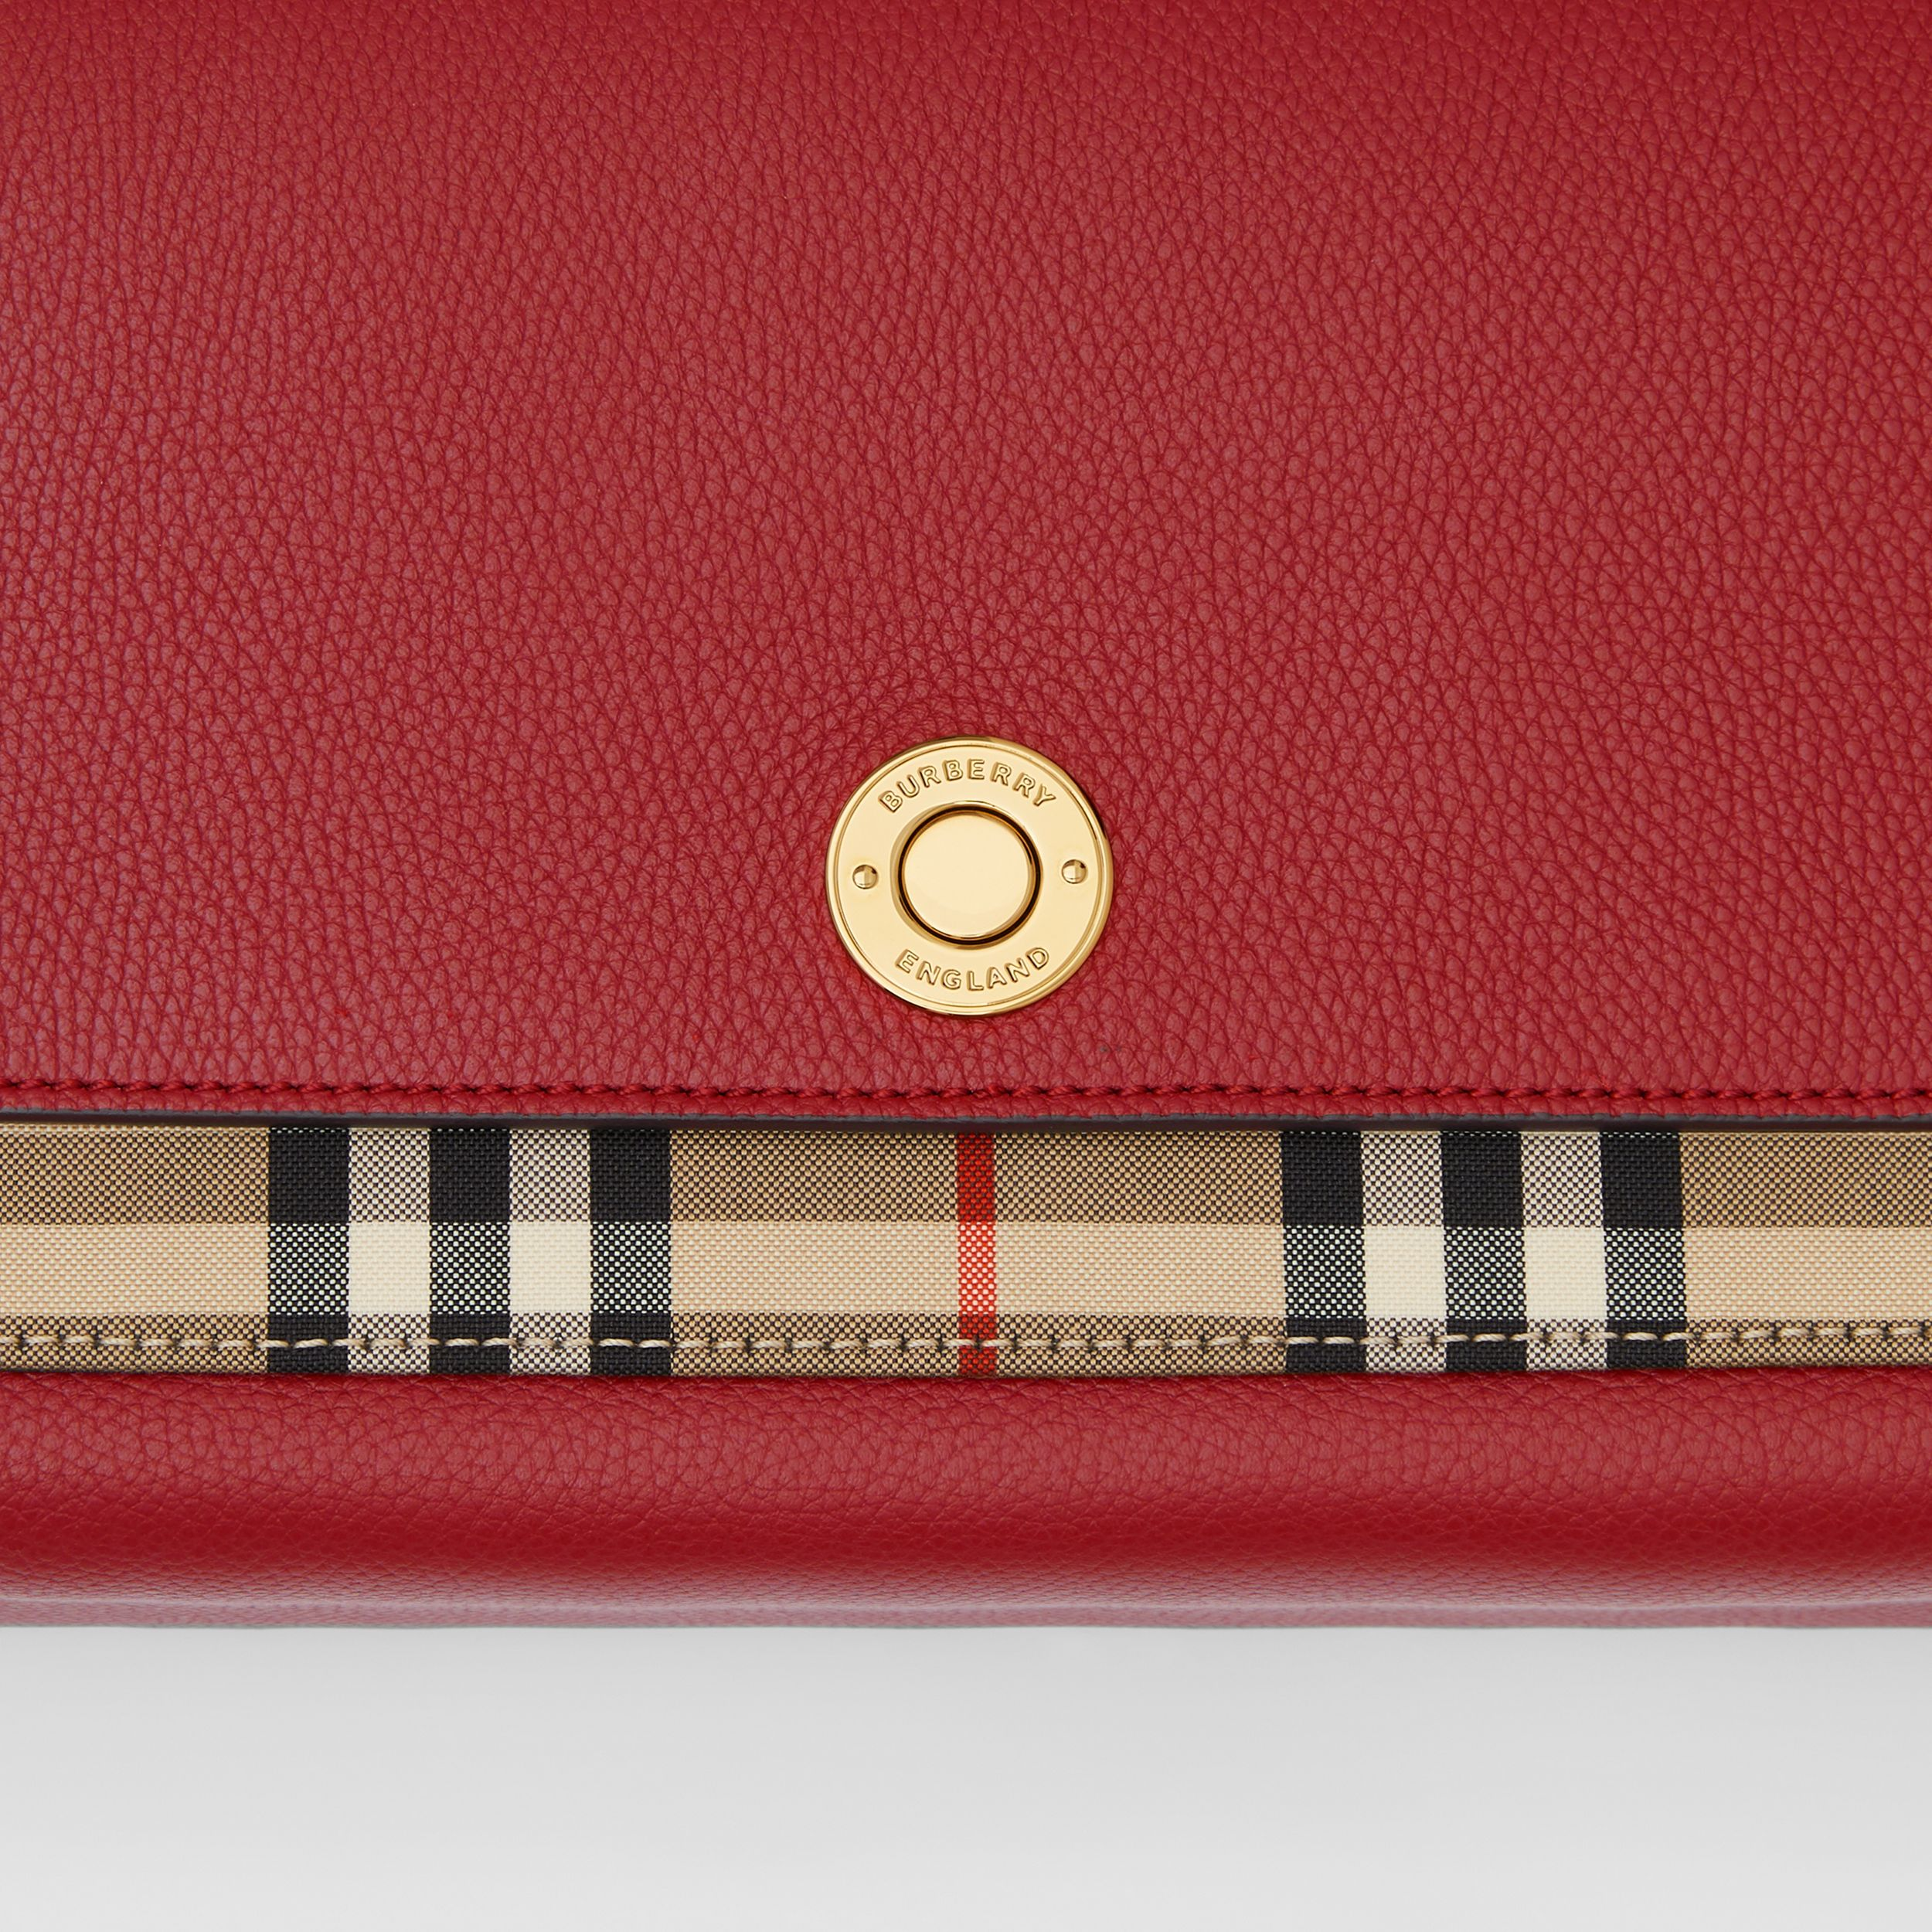 Leather and Vintage Check Note Crossbody Bag in Dark Carmine - Women | Burberry - 2